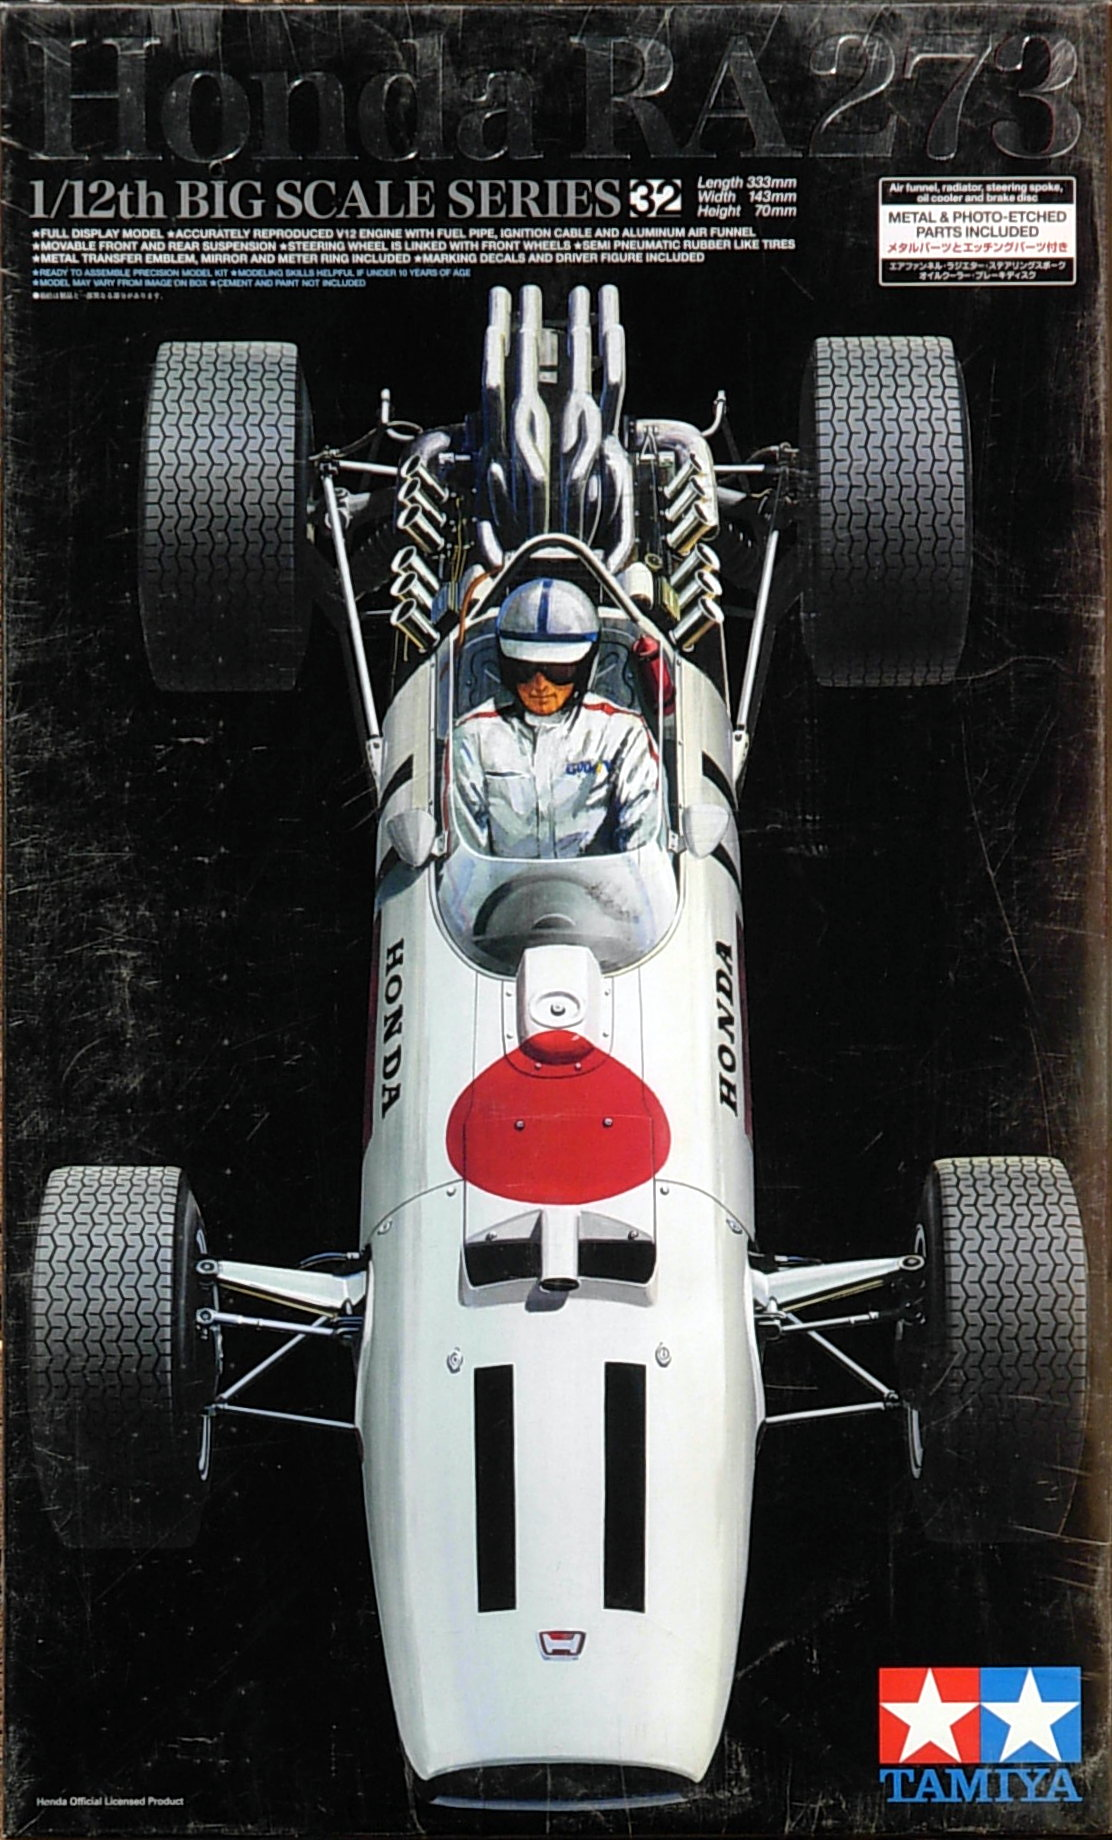 Honda RA273 - with etched parts